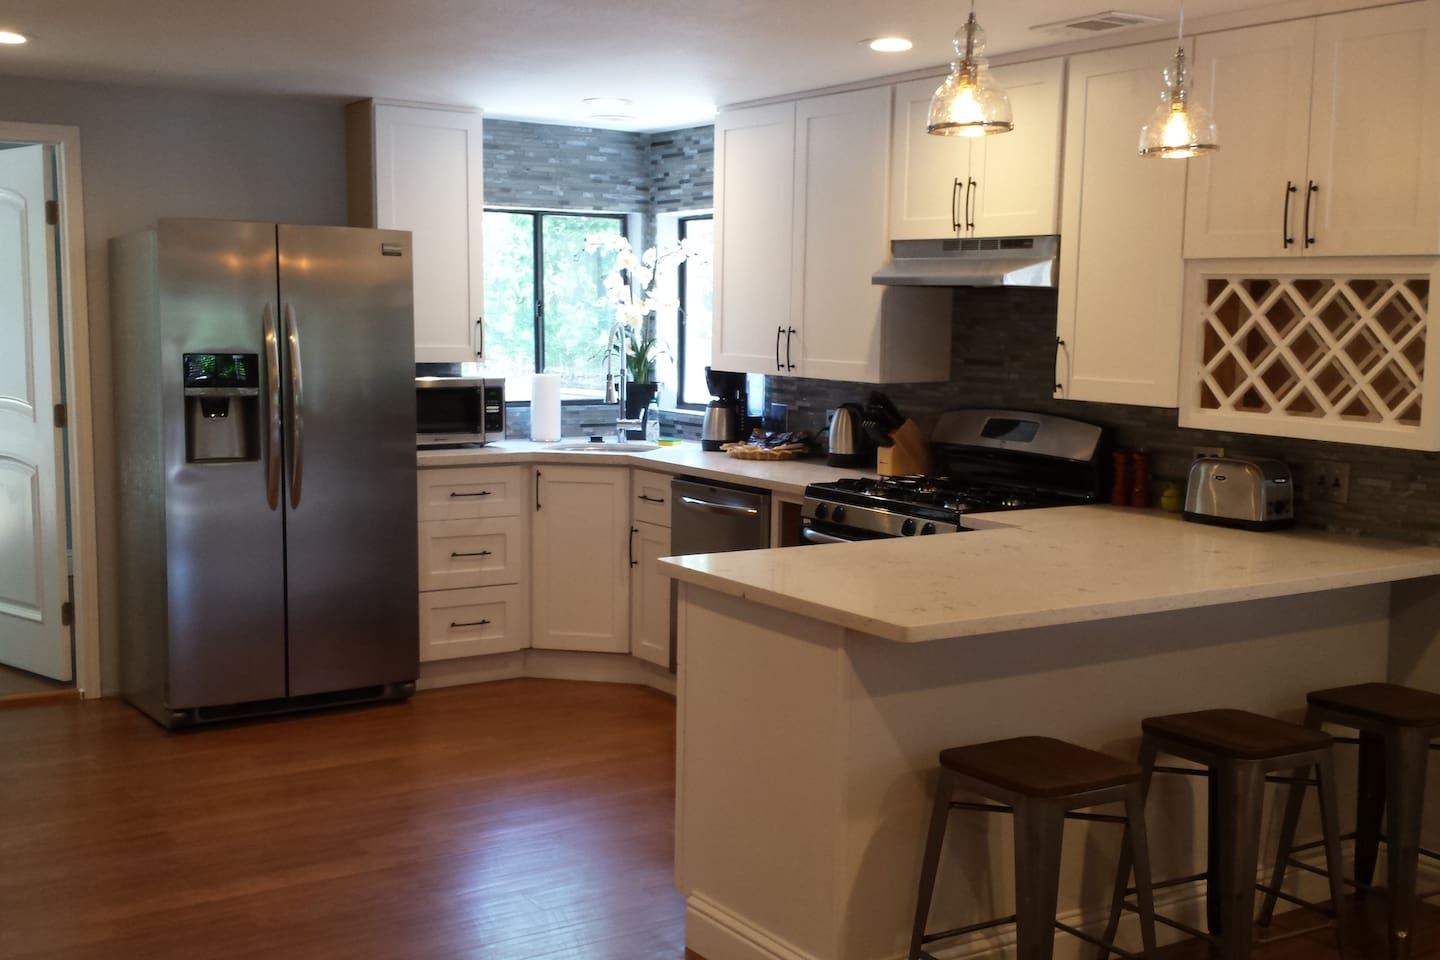 Brand new kitchen with full amenities!